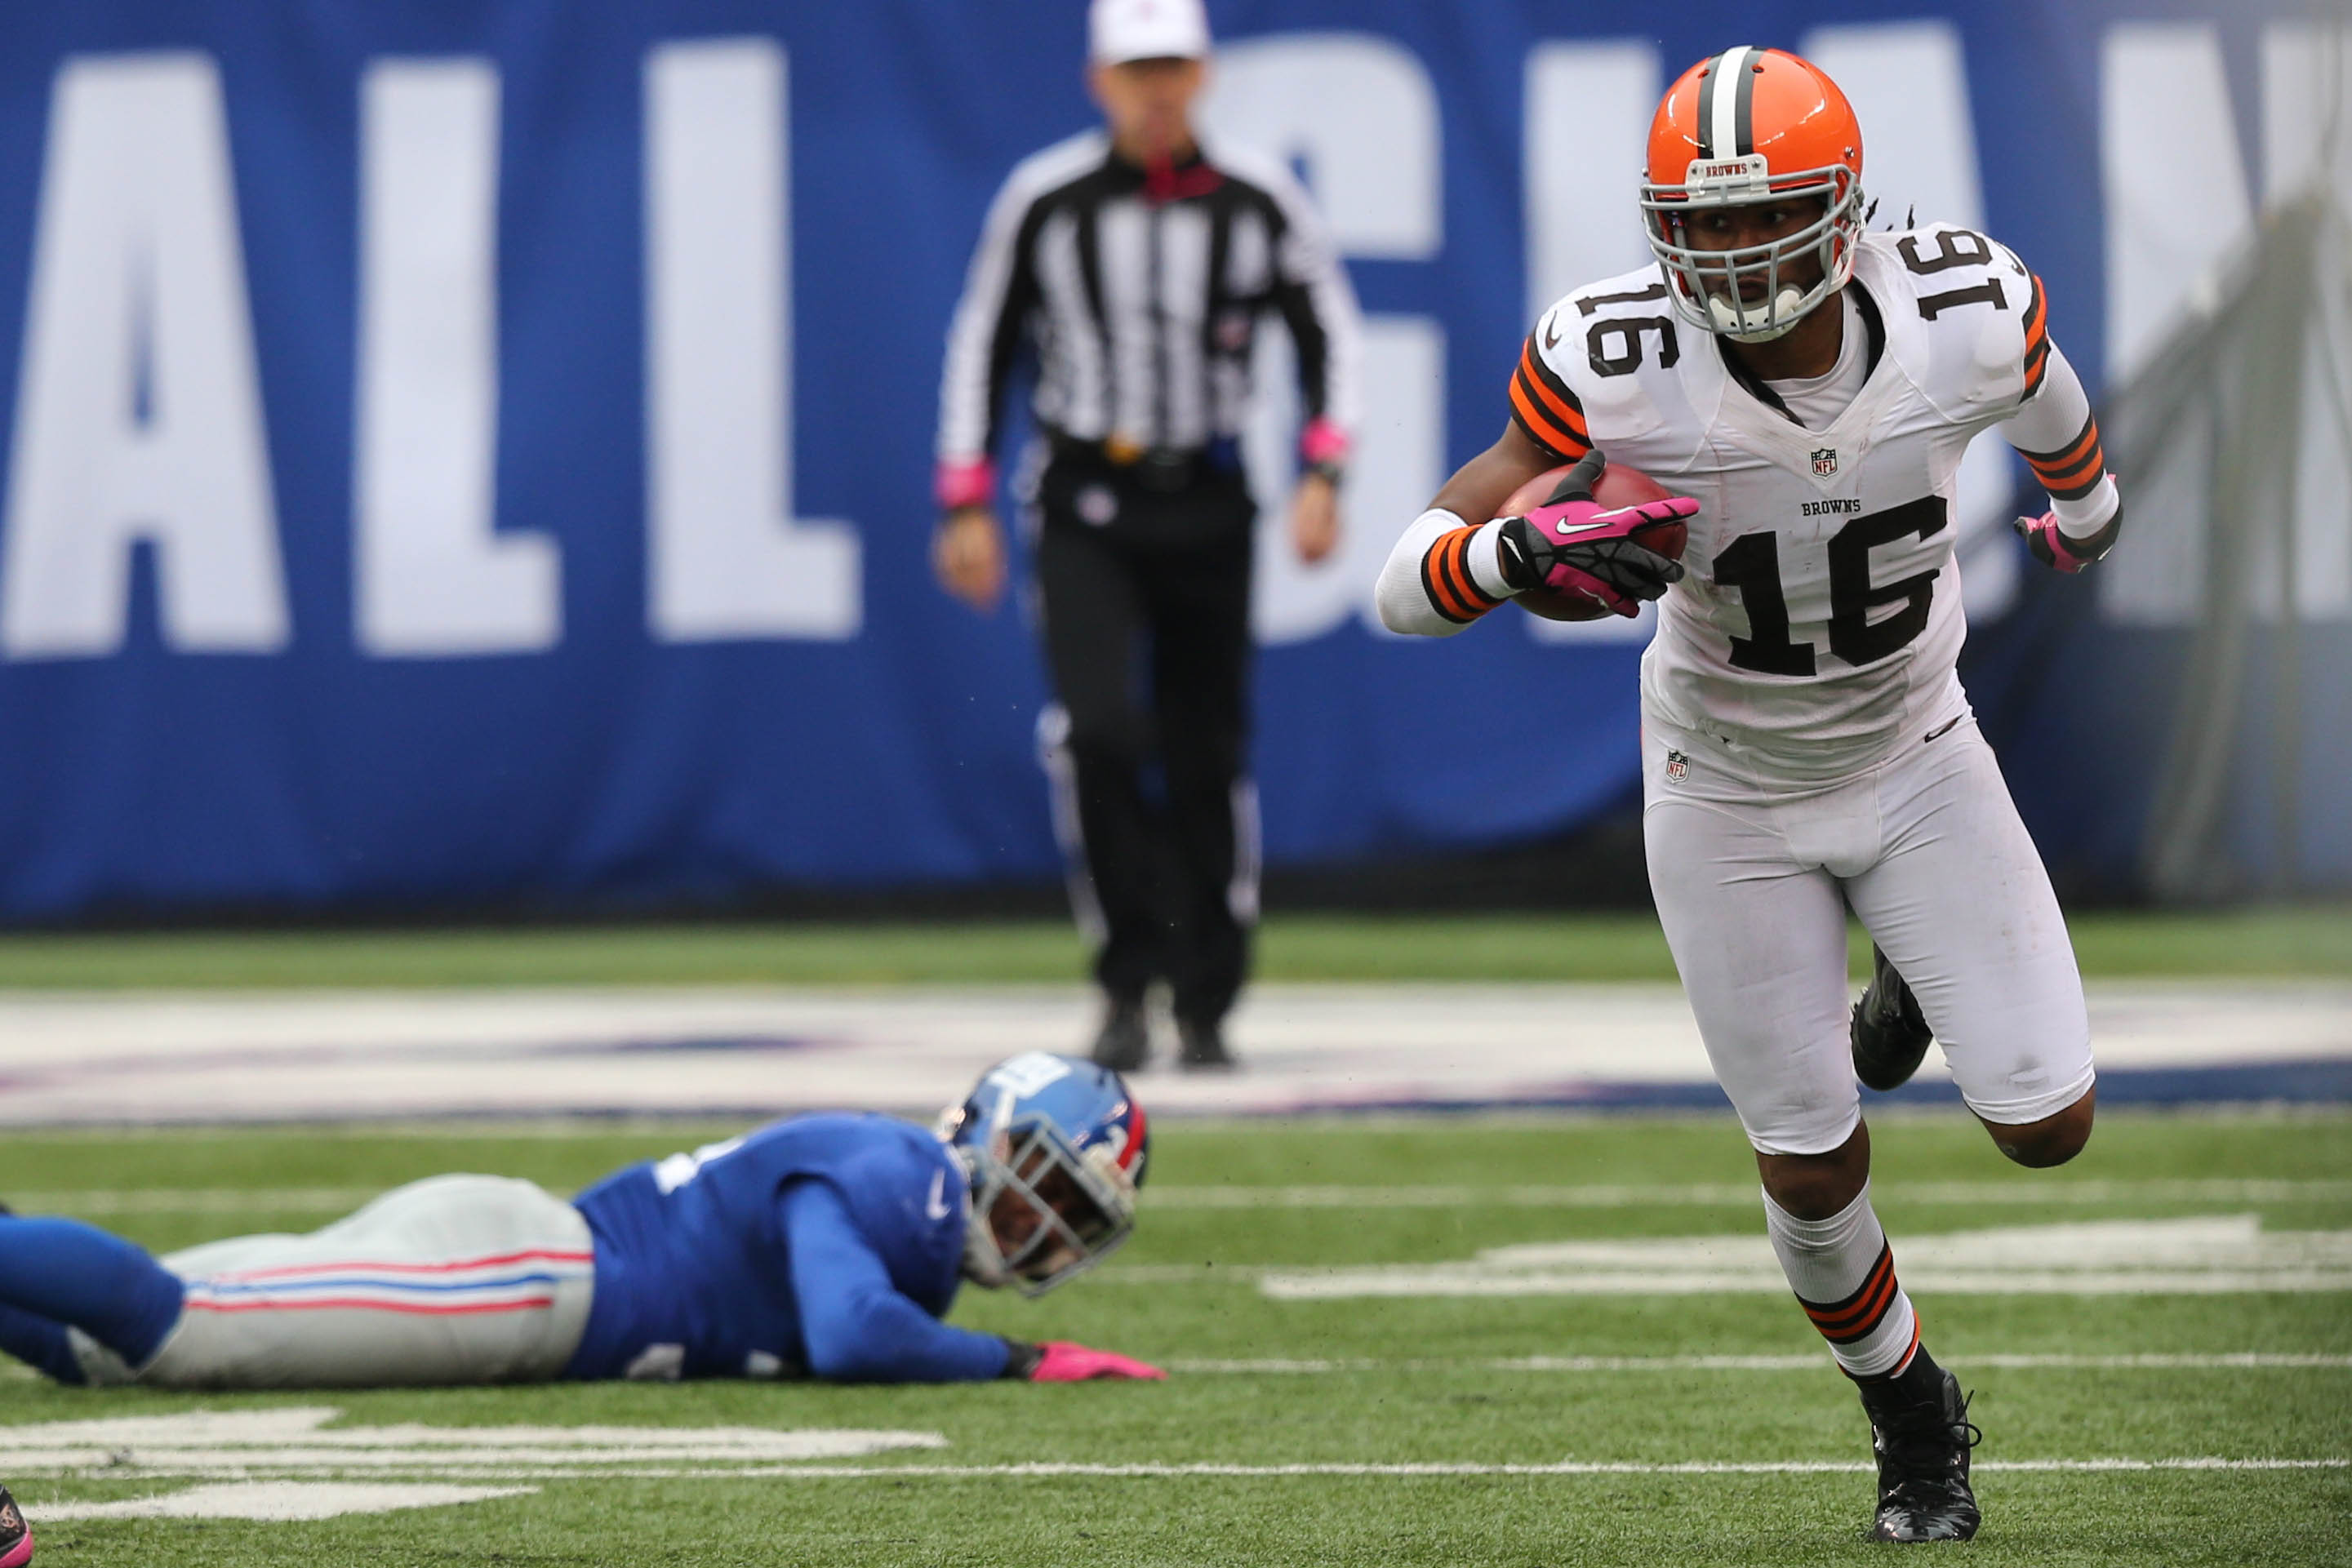 Cleveland Browns wide receiver Josh Cribbs, shown in 2012. (Photo: Anthony Gruppuso, USA TODAY Sports)